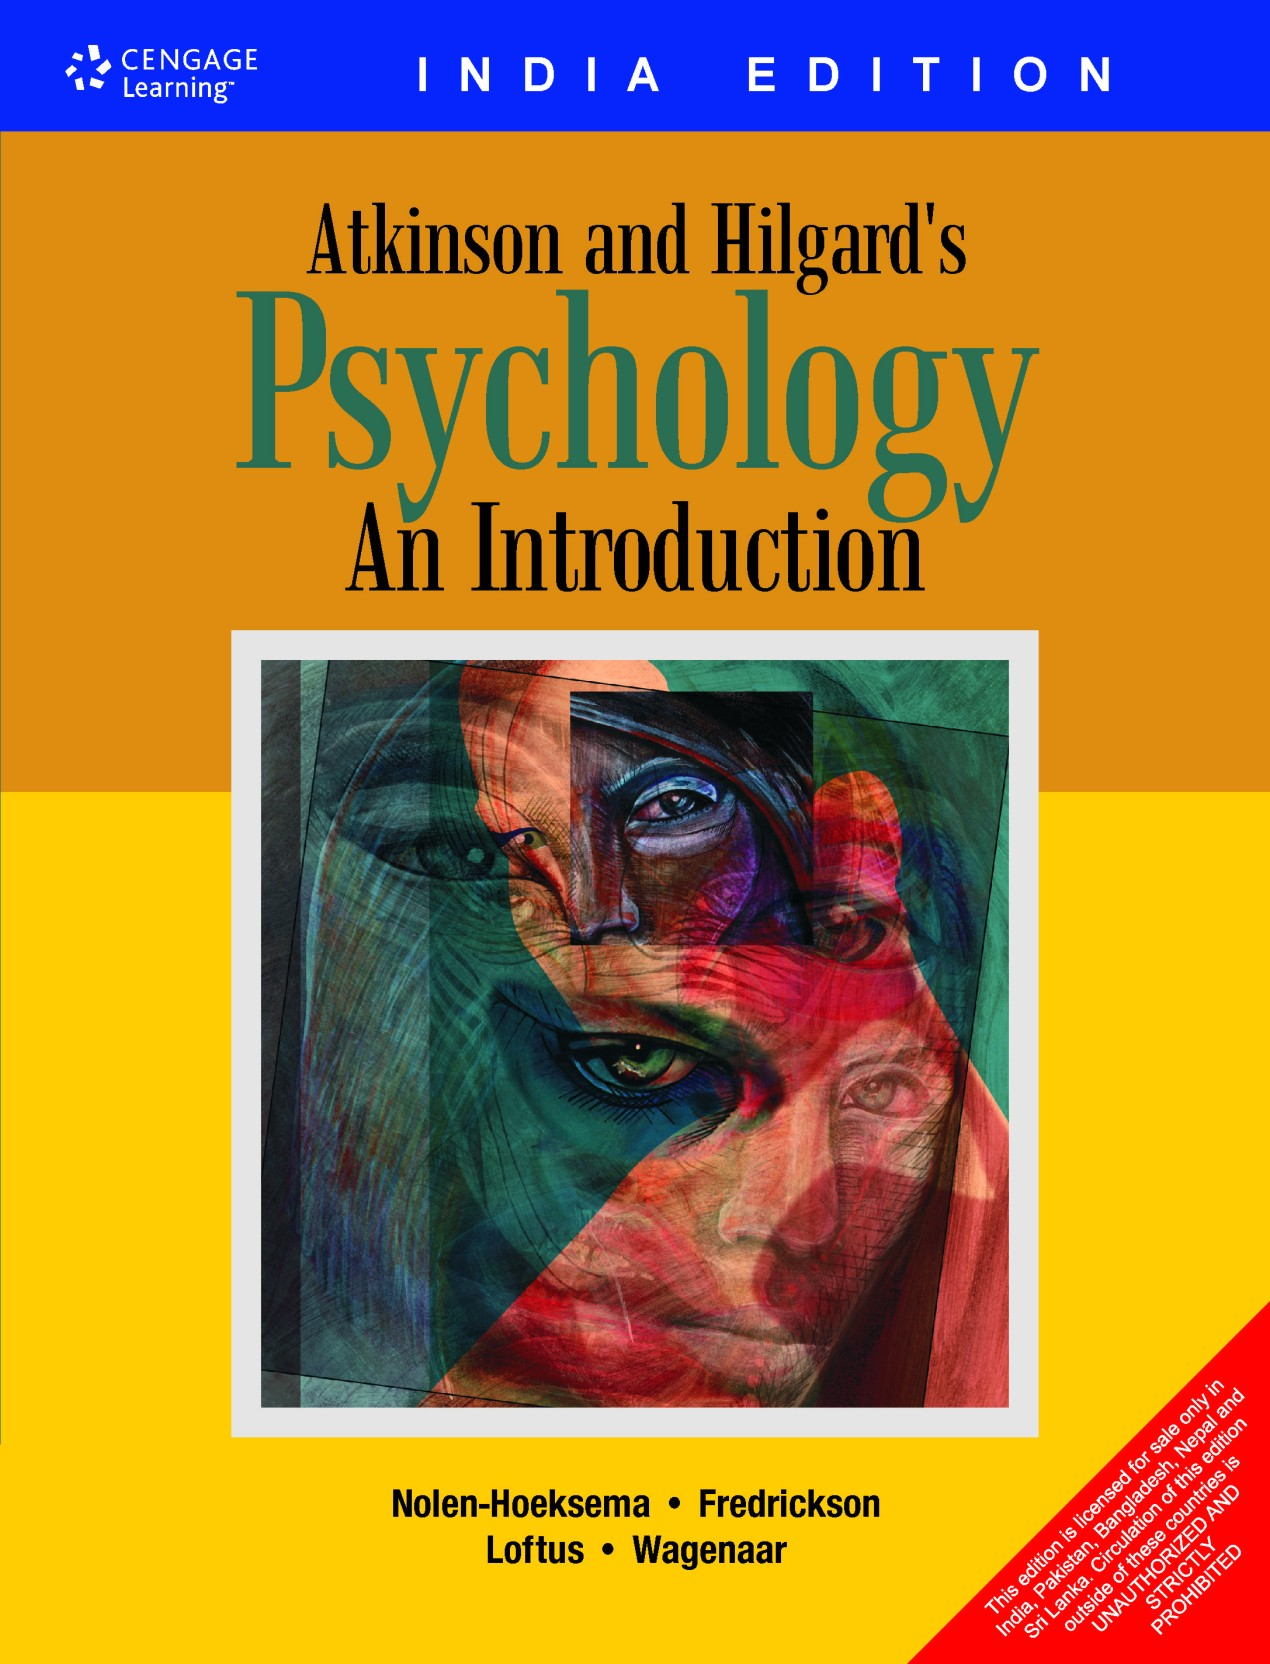 papers on psychology A research paper: depression 4 pages 1092 words  depression is defined as a mental illness in which a person experiences deep, unshakable sadness and diminished interest in nearly all activities.